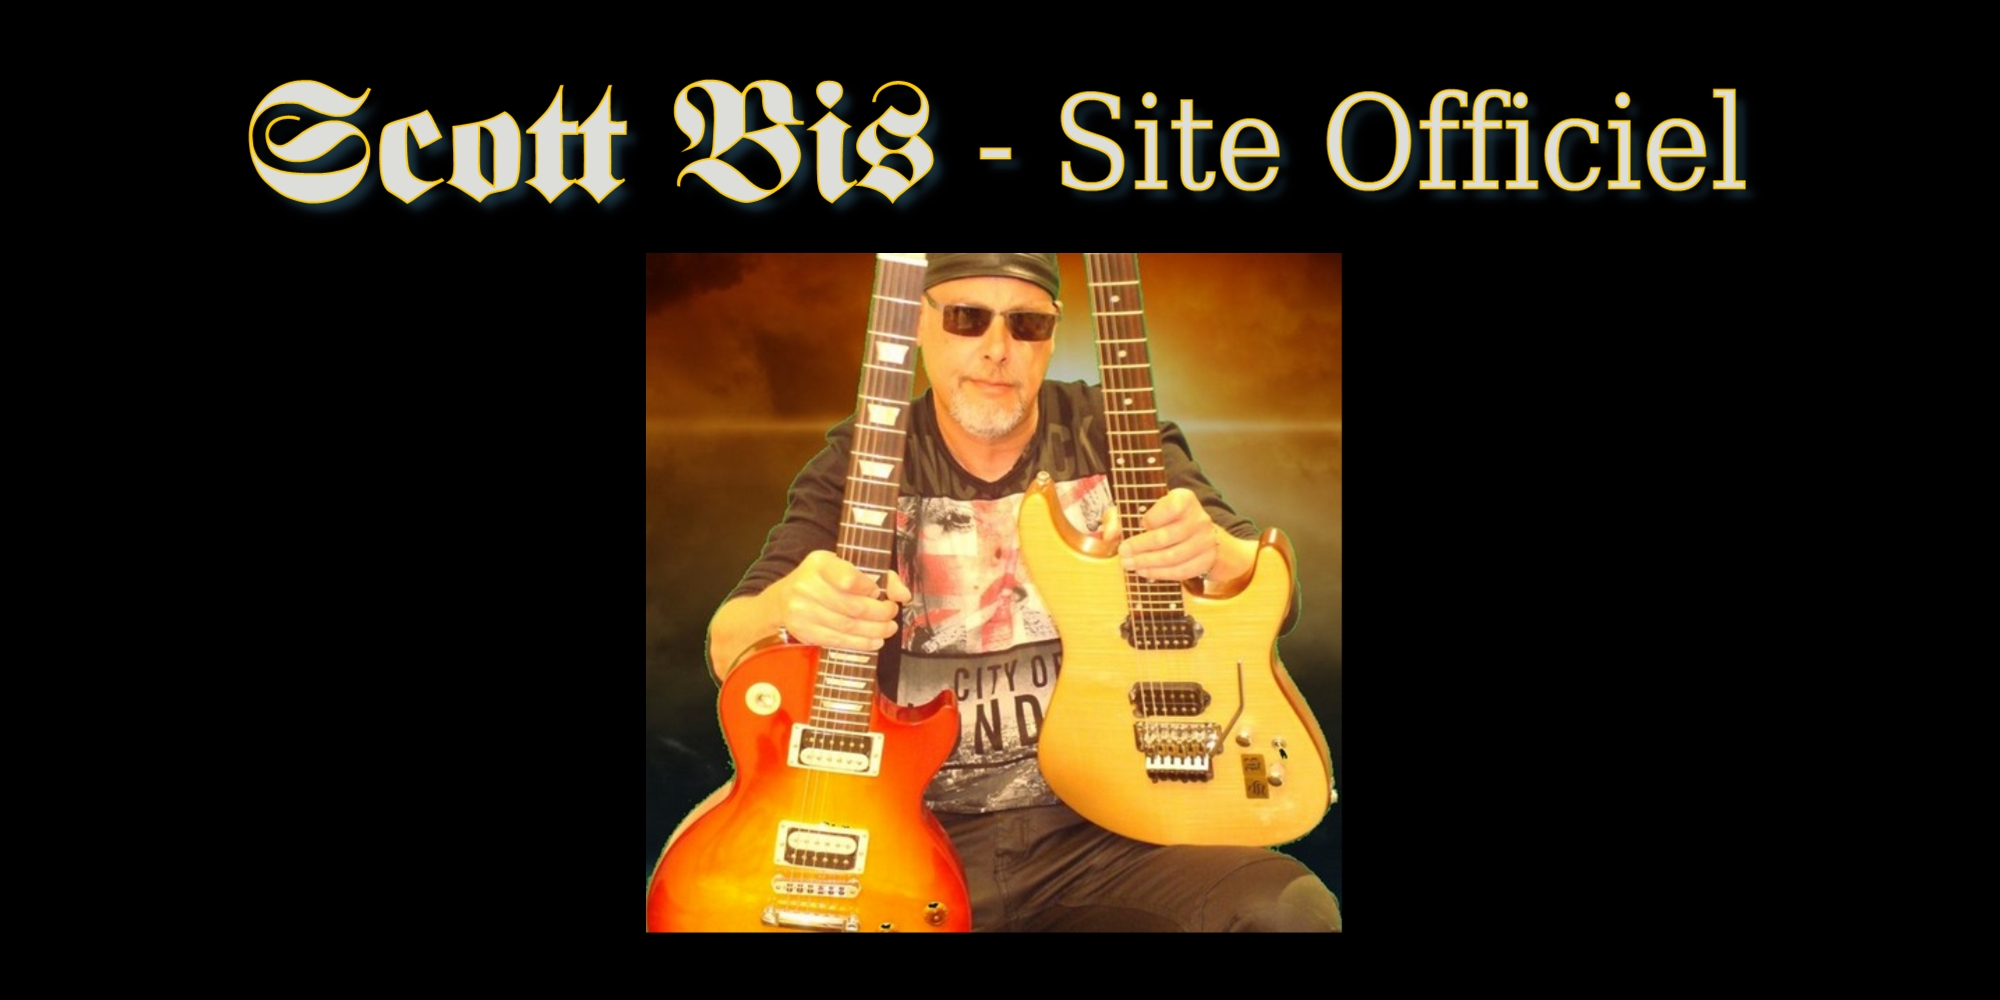 scott bis site officiel official website. Black Bedroom Furniture Sets. Home Design Ideas